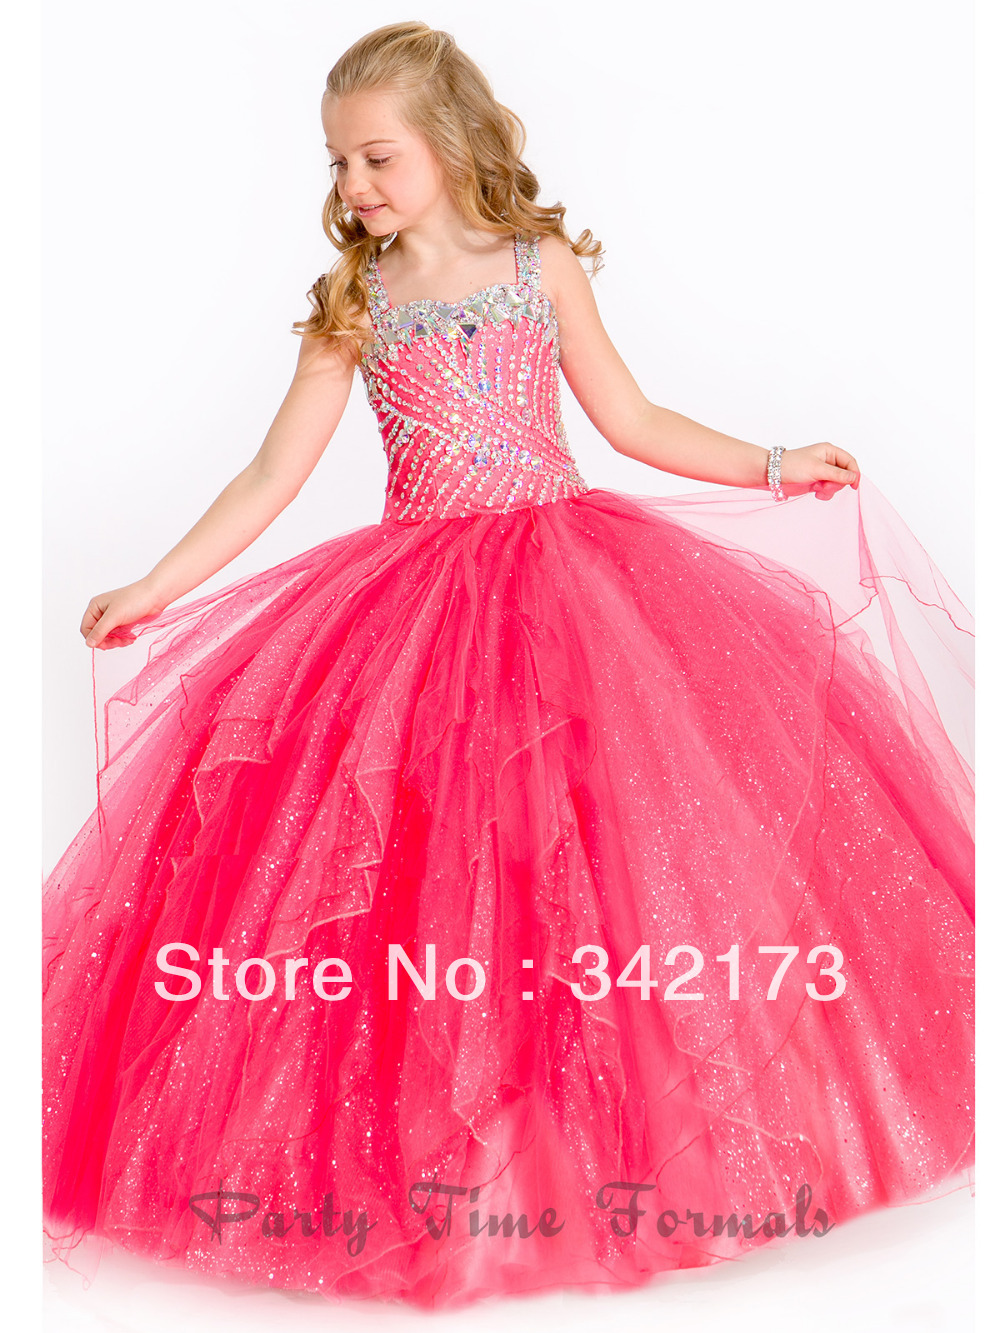 Best Pink Embellished Bodice Ruffle Tulle Pageant Ball Gowns Little ...